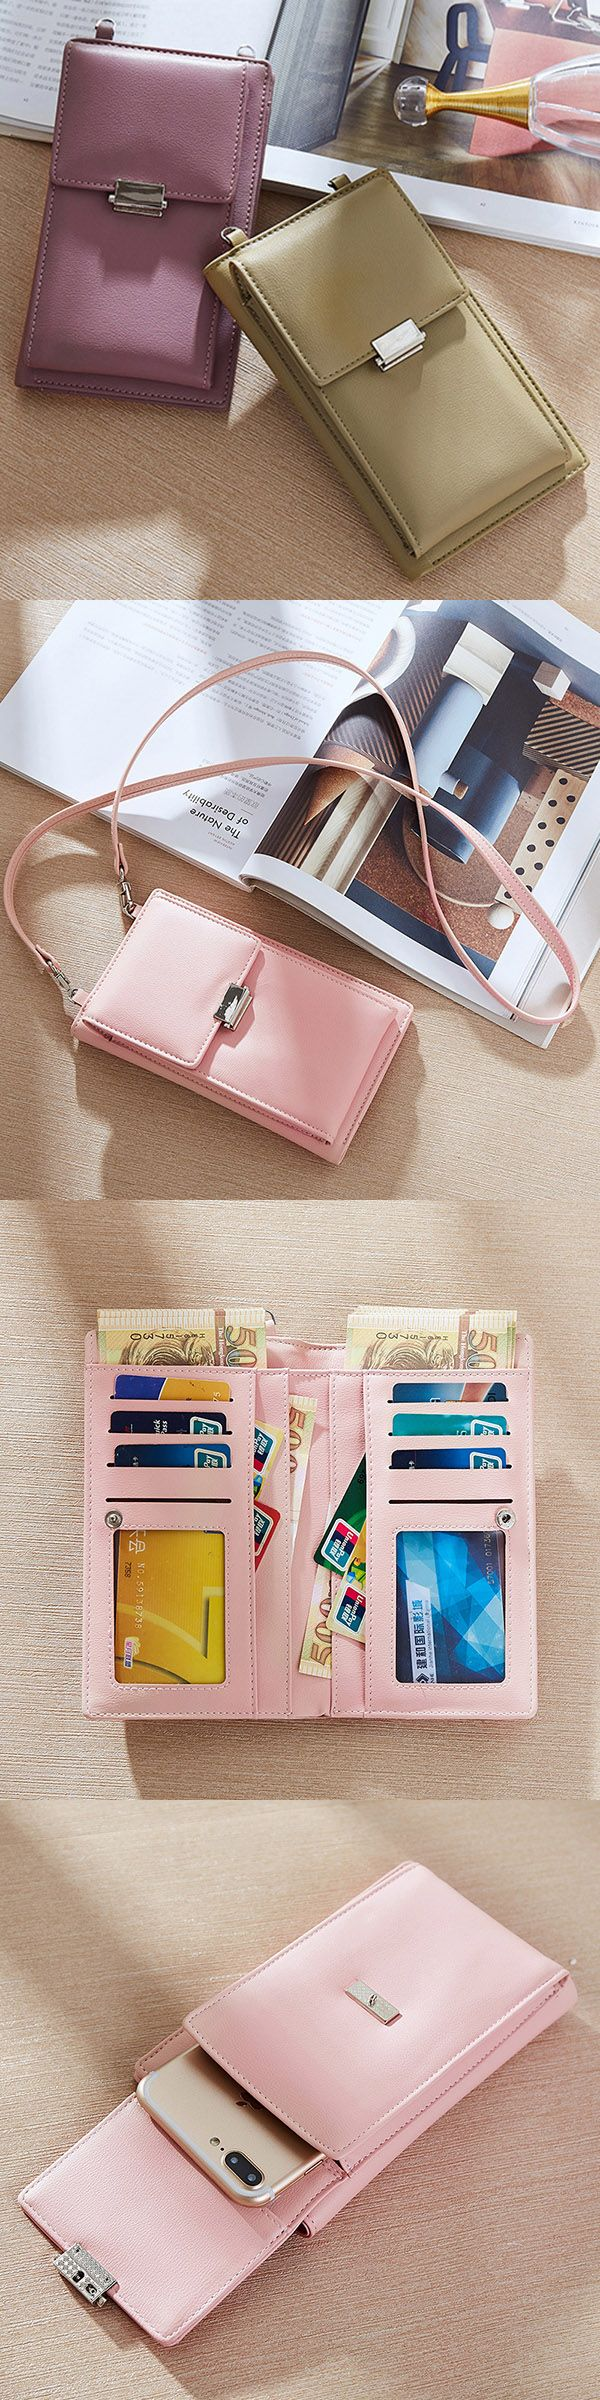 US$15.72  Candy Color Phone Bag Wallet Crossbody Bag Shoulder Bags Purse For Women